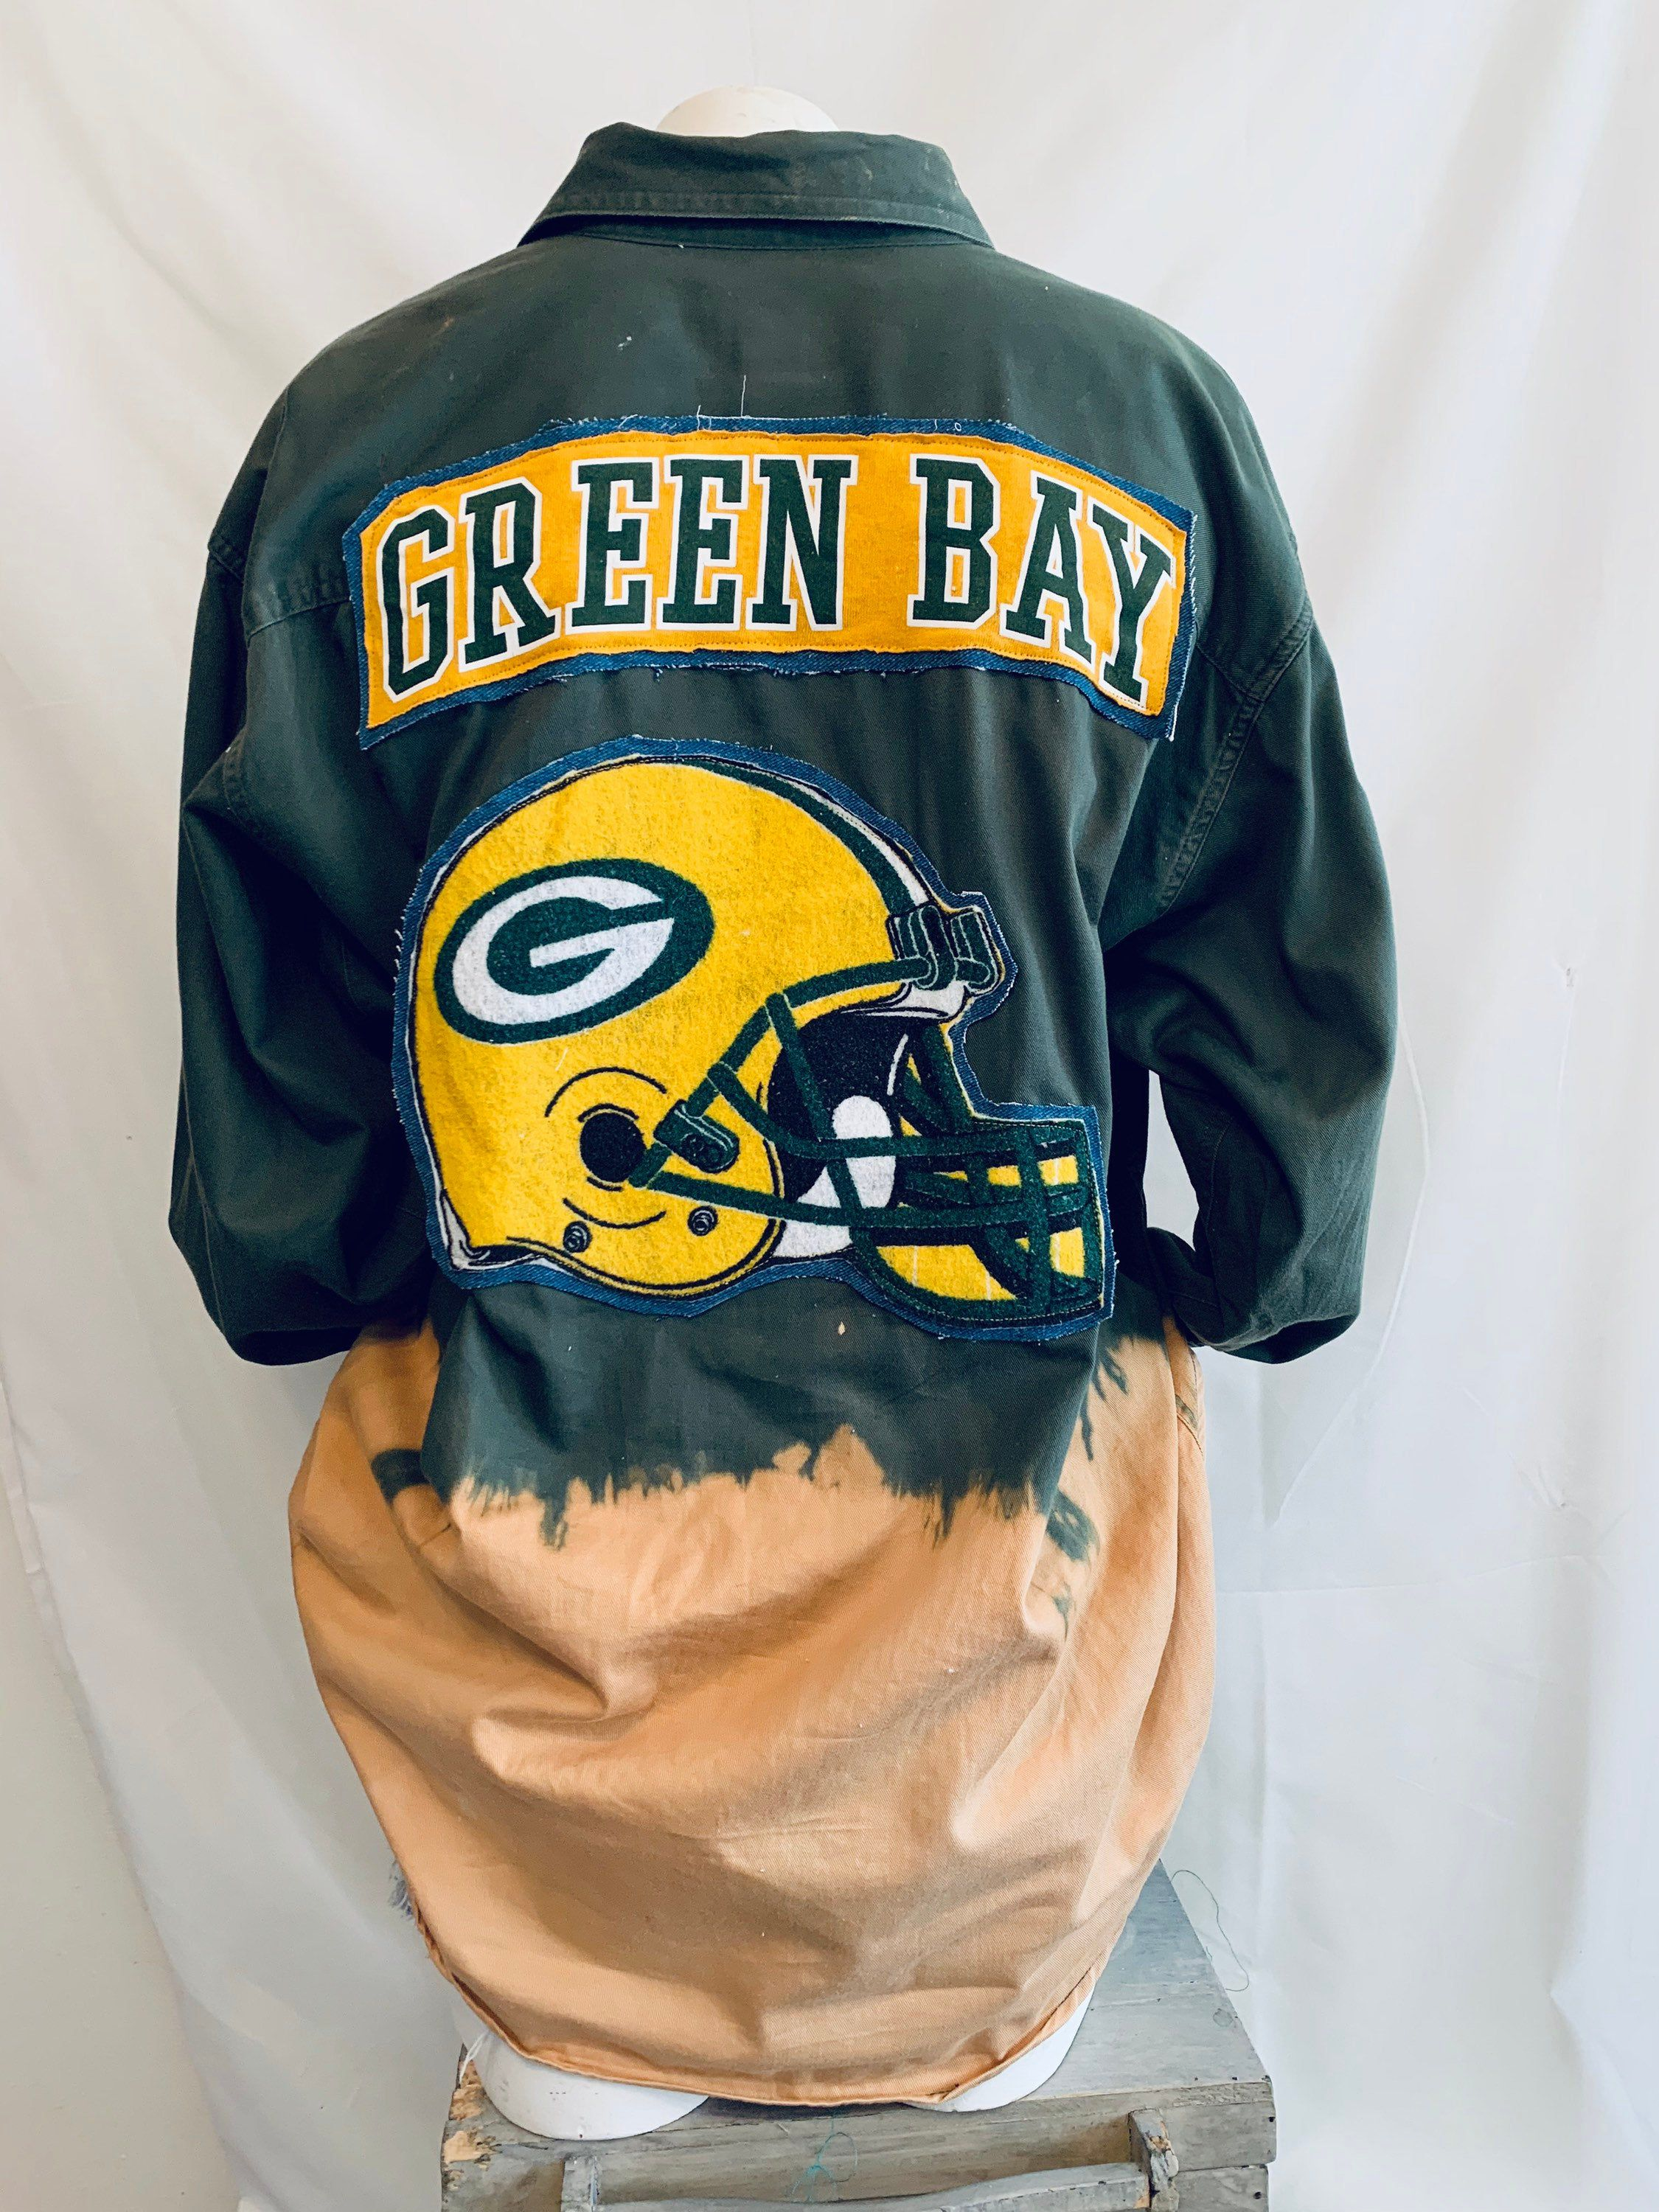 90s Green Bay Packers Upcycled Nfl Sperbowl Button Up Shirt Etsy In 2020 Gameday Outfit Green Bay Packers Clothing Shirts